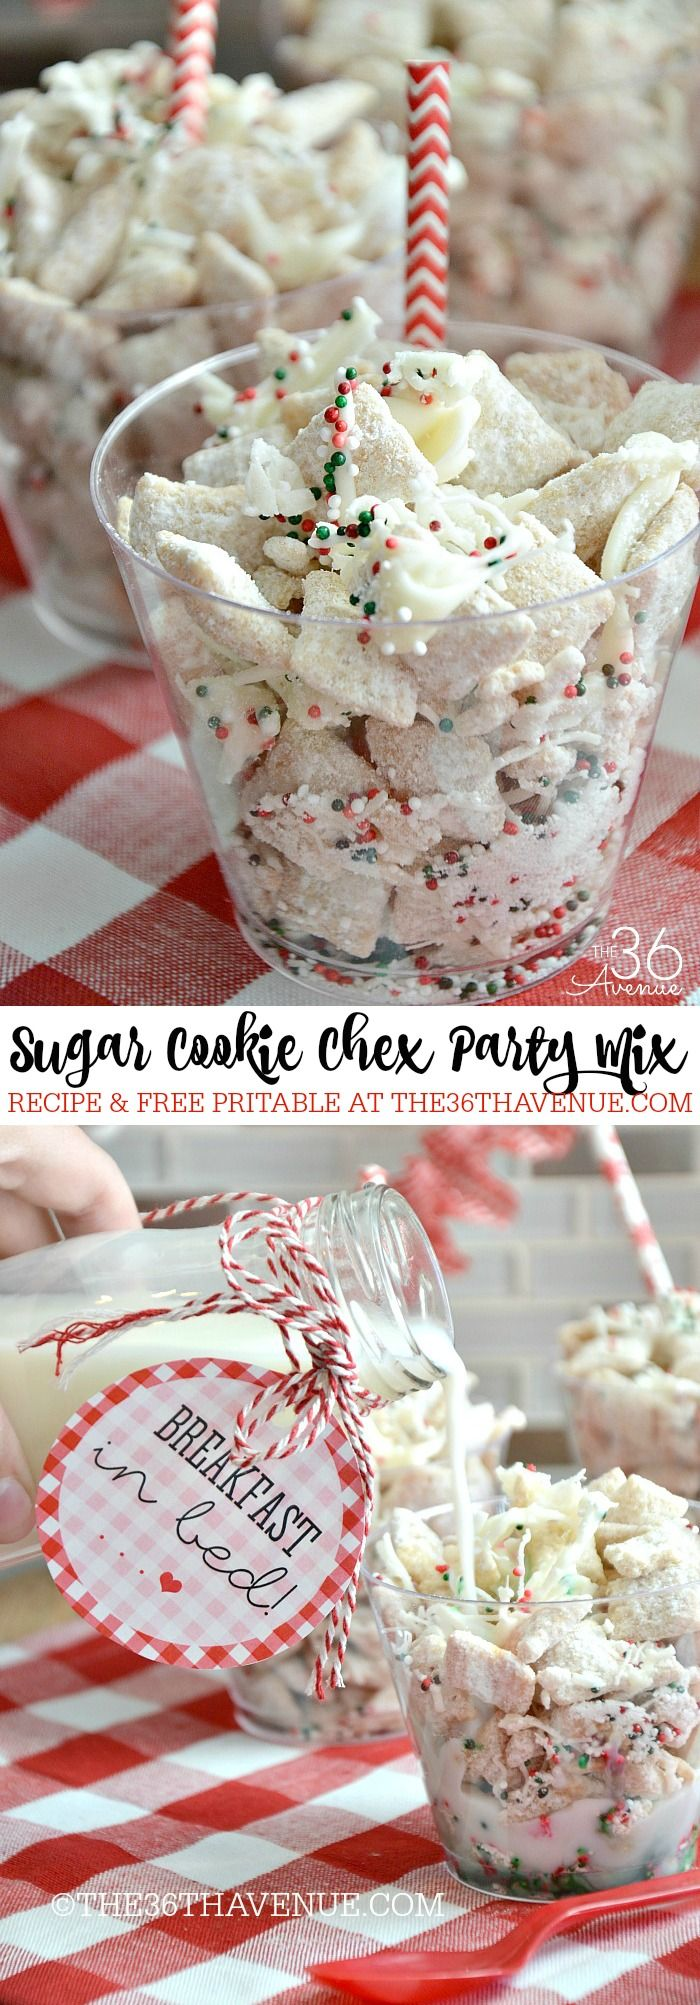 Sugar Cookie Party Mix and Printable